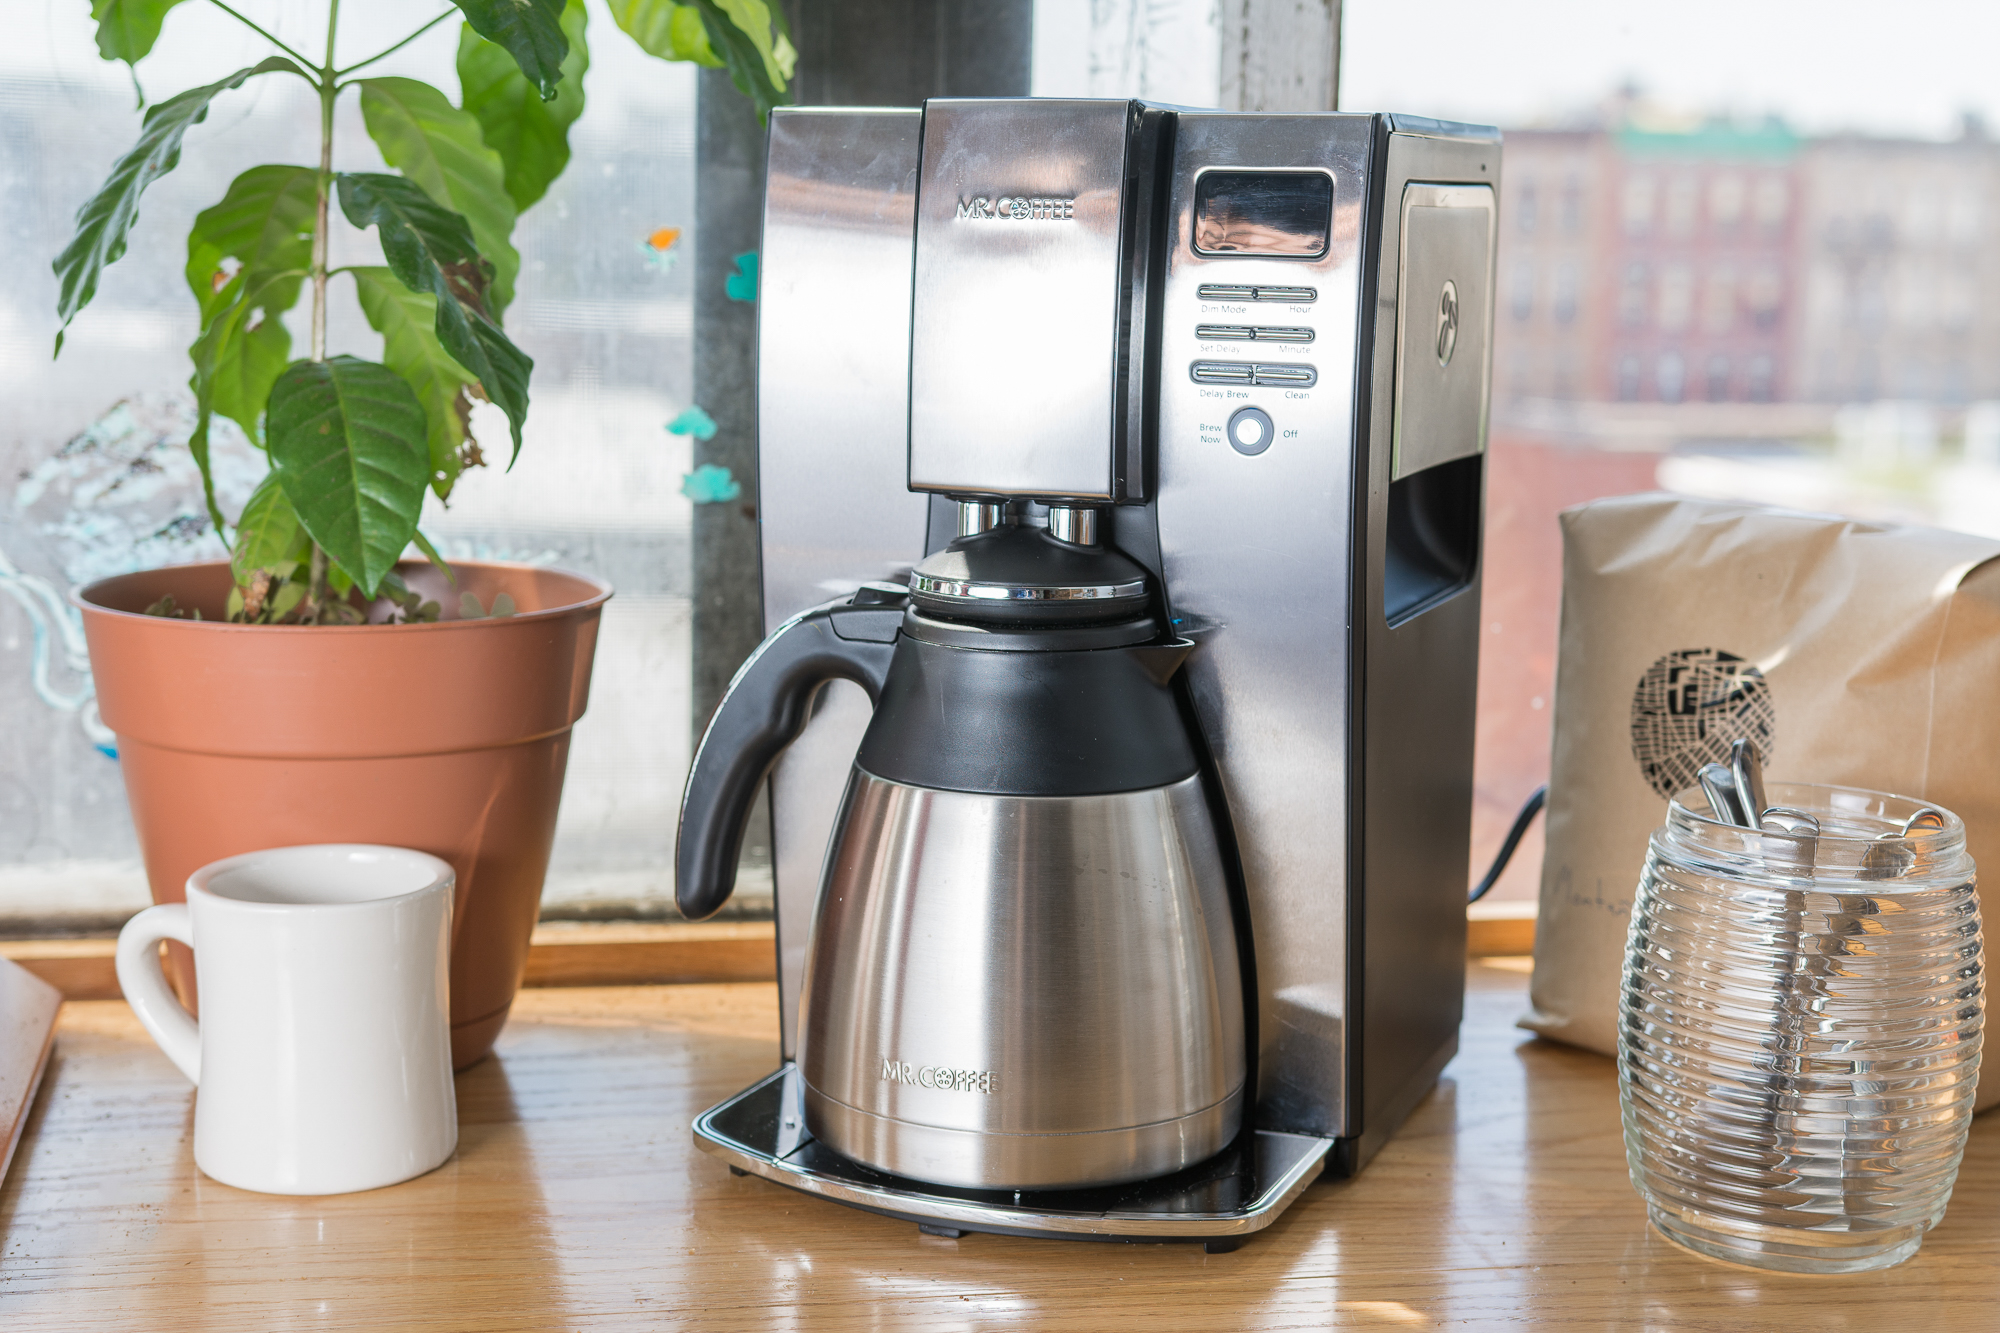 The best cheap coffee maker - AIVAnet